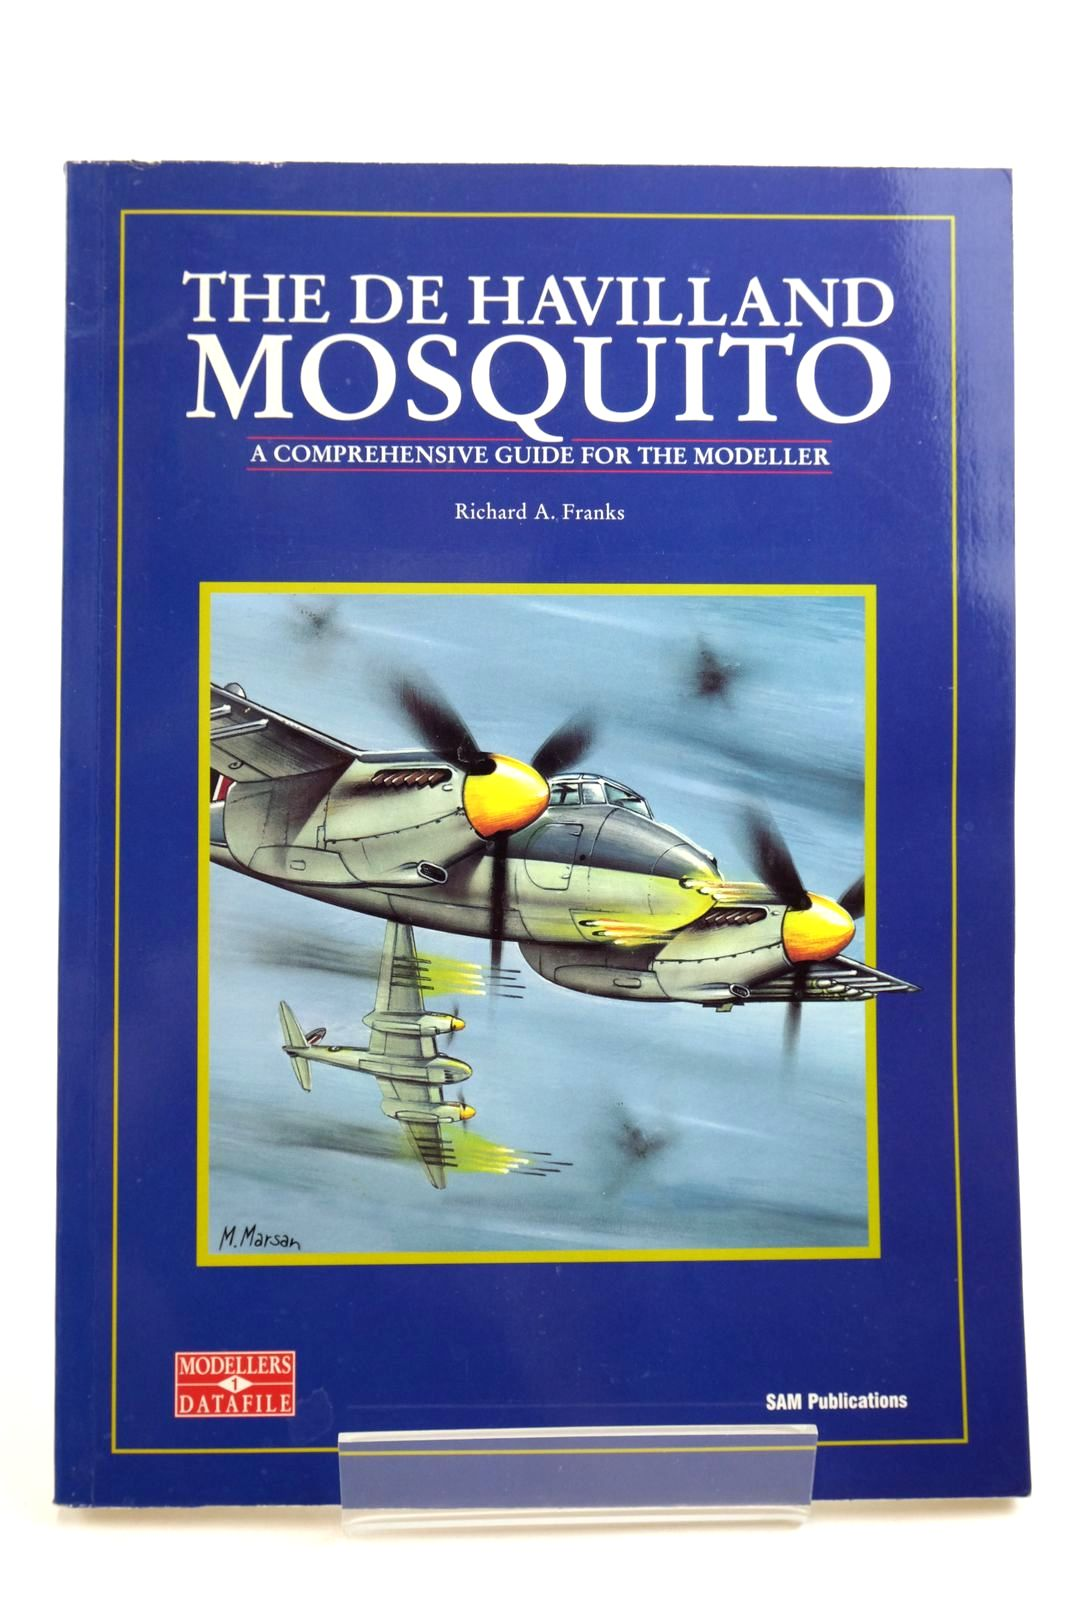 Photo of THE DE HAVILLAND MOSQUITO A COMPREHENSIVE GUIDE FOR THE MODELLER written by Franks, Richard A. published by Sam Publications (STOCK CODE: 2134488)  for sale by Stella & Rose's Books